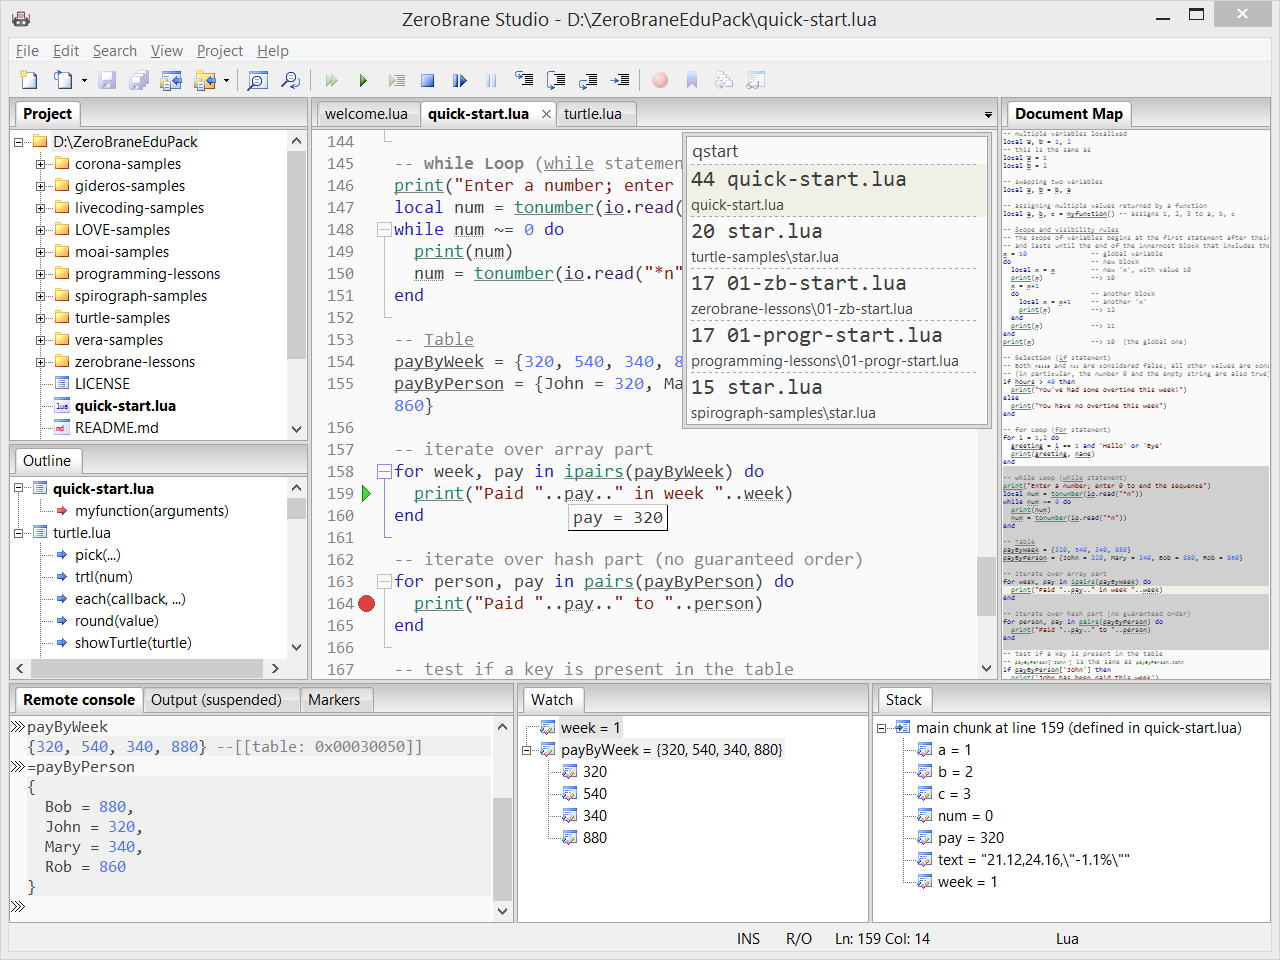 ZeroBrane Studio debugger screenshot